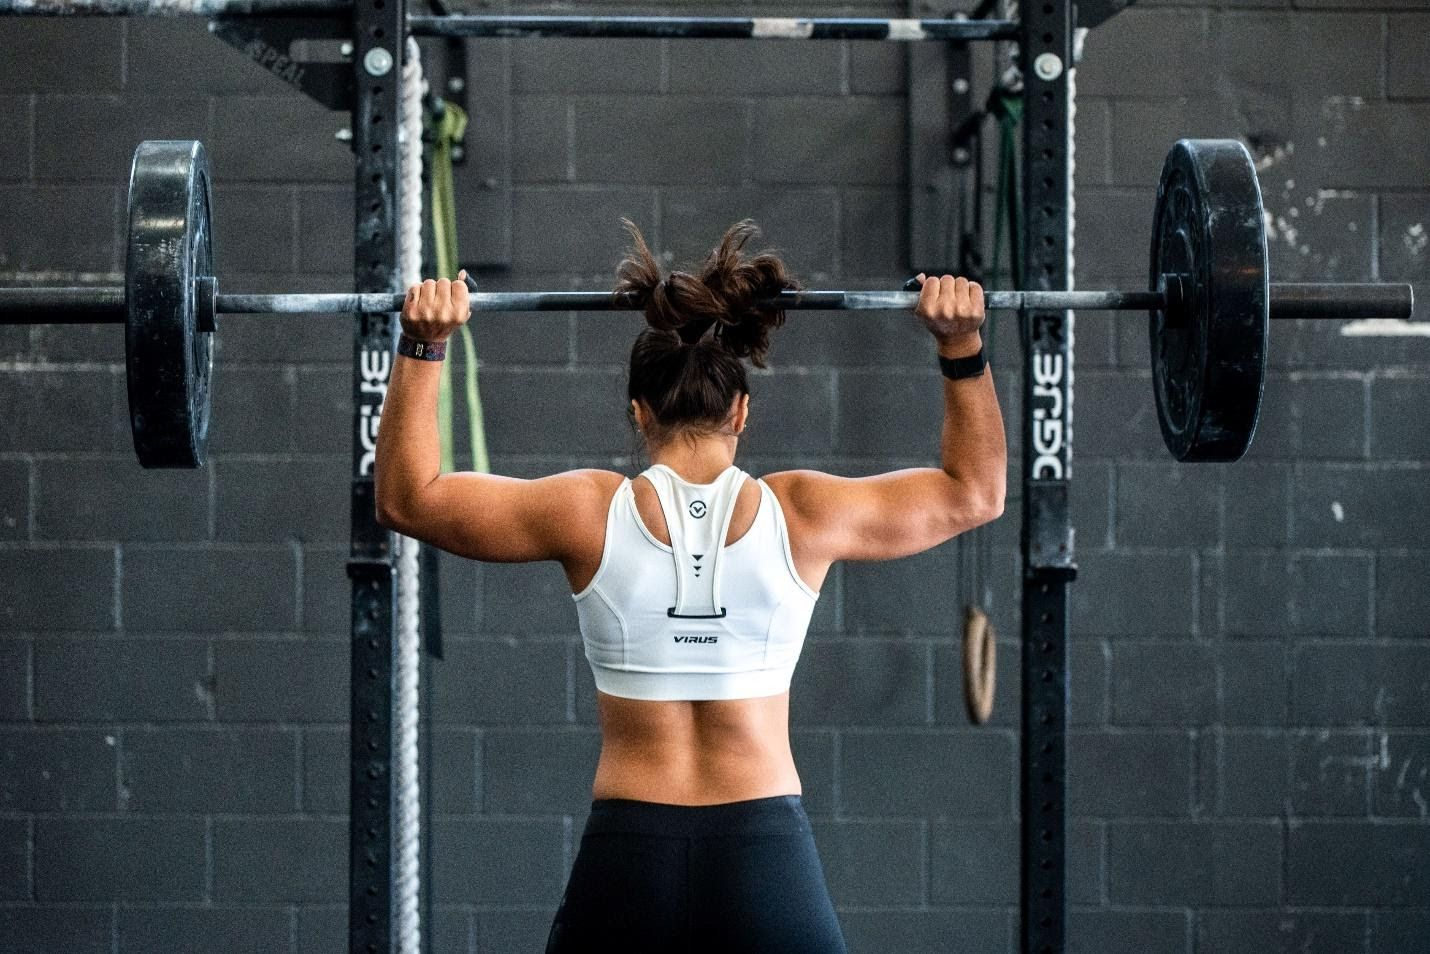 /4-ai-based-personal-trainers-that-are-changing-the-future-of-fitness-ex6f33pt feature image